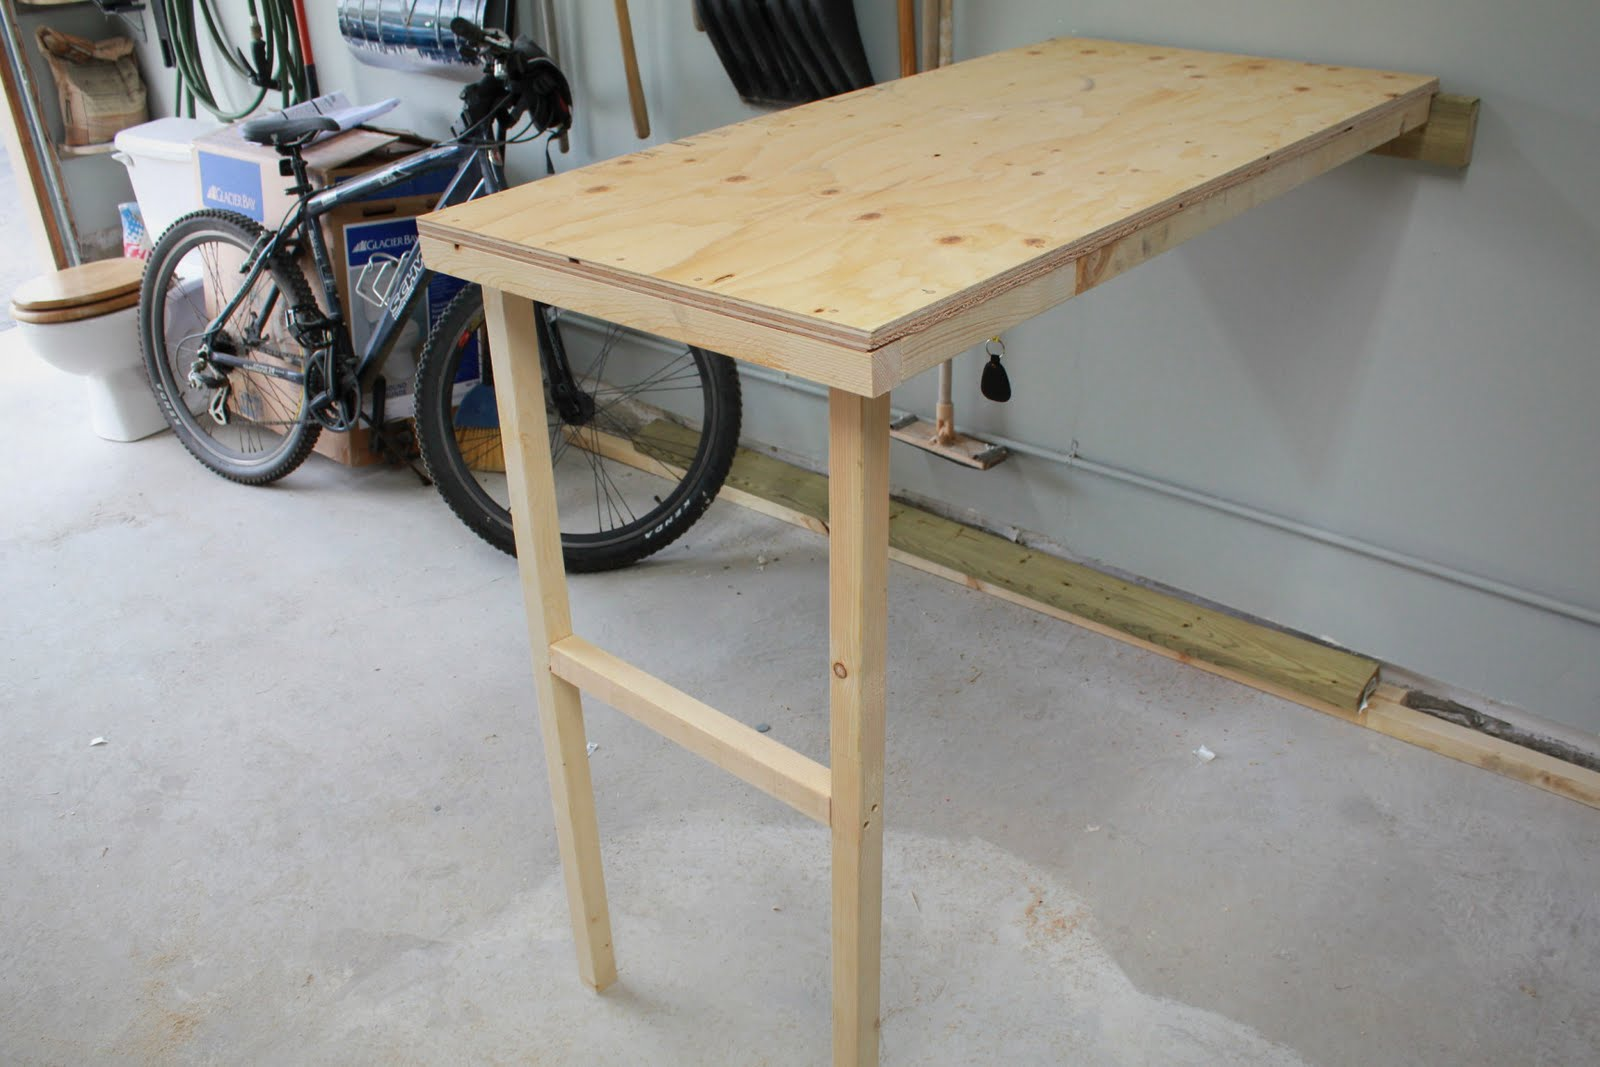 Fold Flat Workbench | Wall Mounted Folding Workbench | Folding Garage Workbench